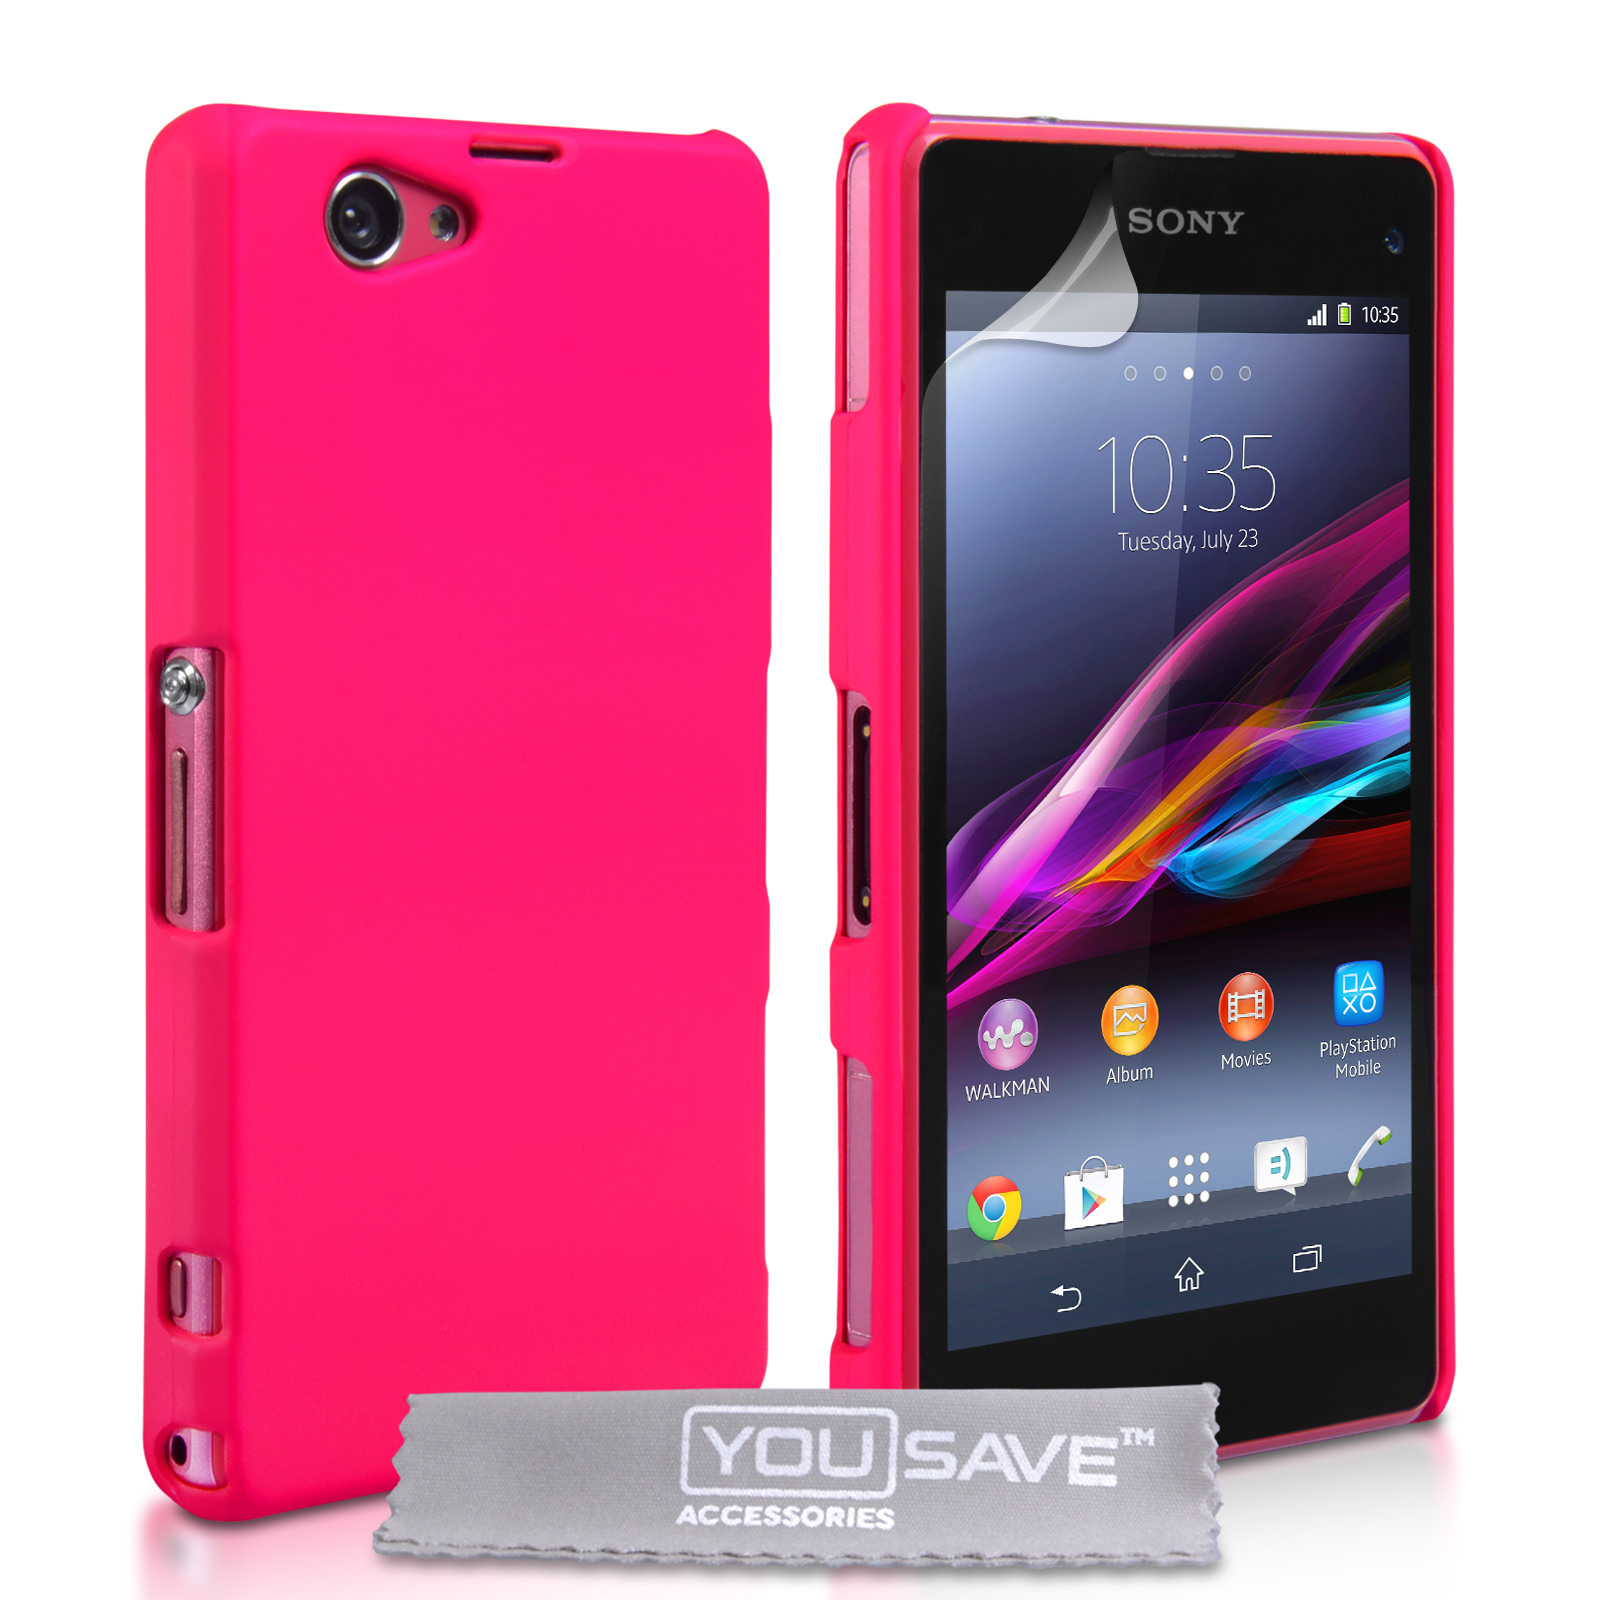 YouSave Accessories Sony Xperia Z1 Compact Hard Hybrid ...